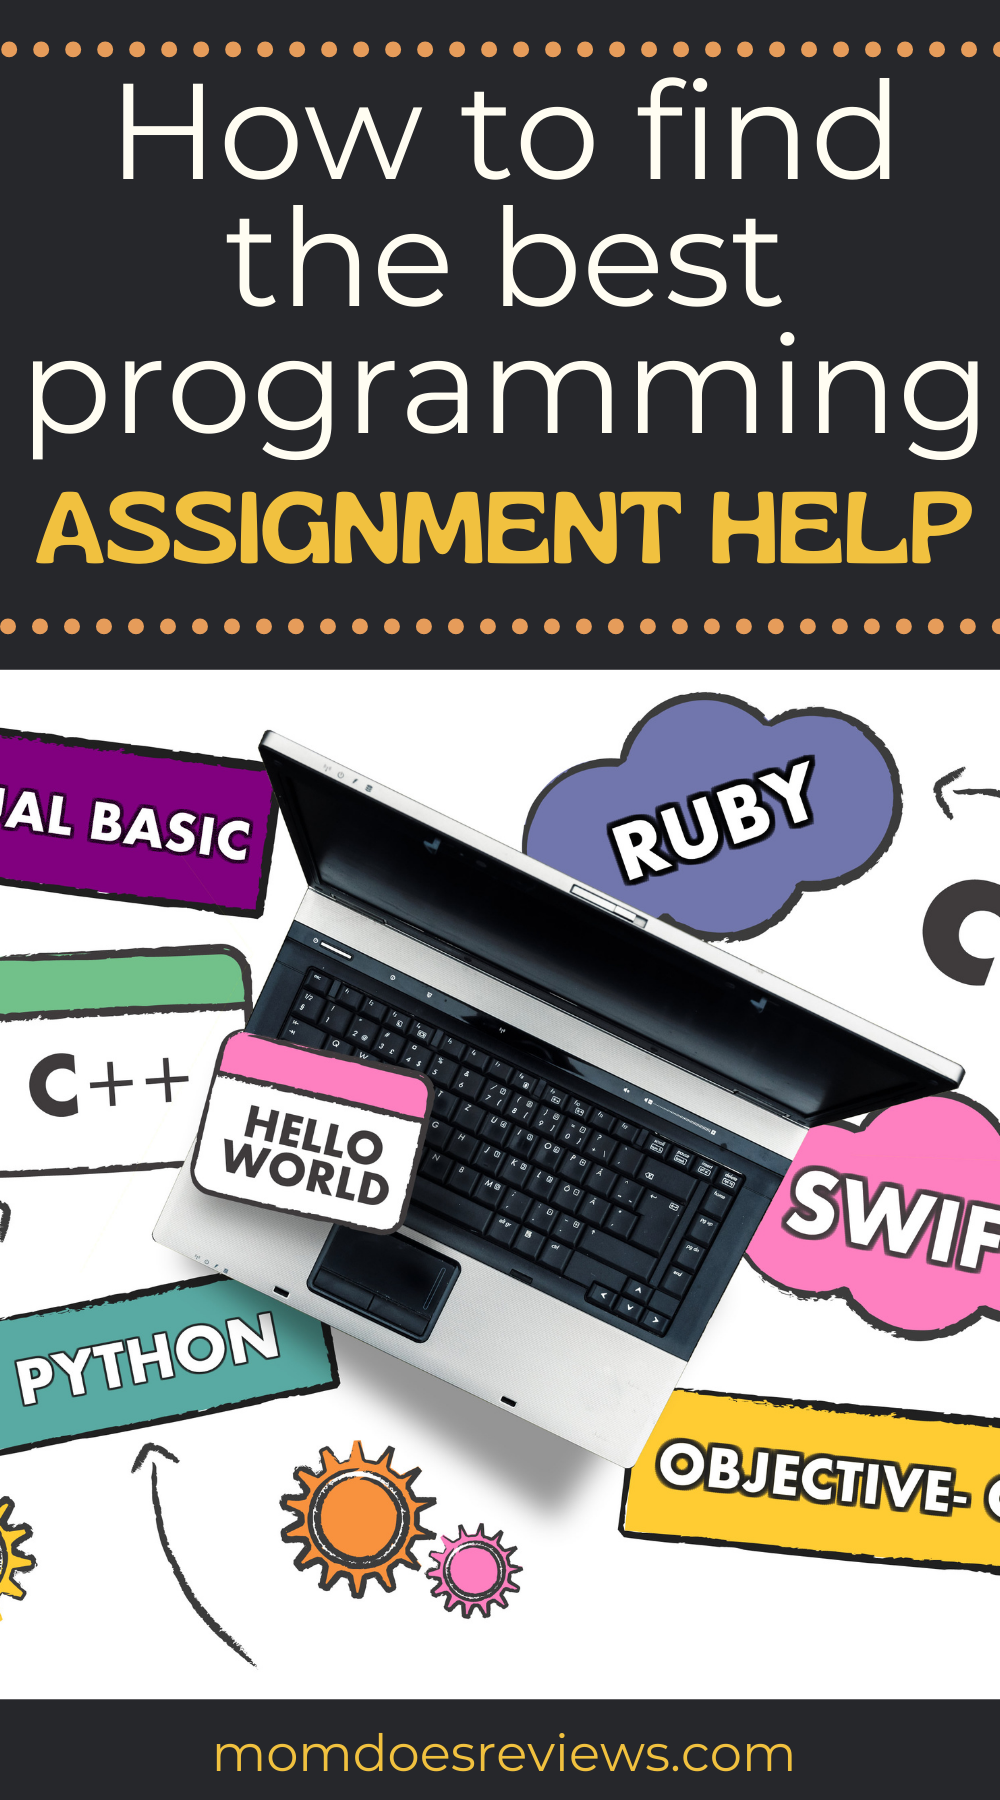 Tips to Find the Best Programming Assignment help Provider on the Internet